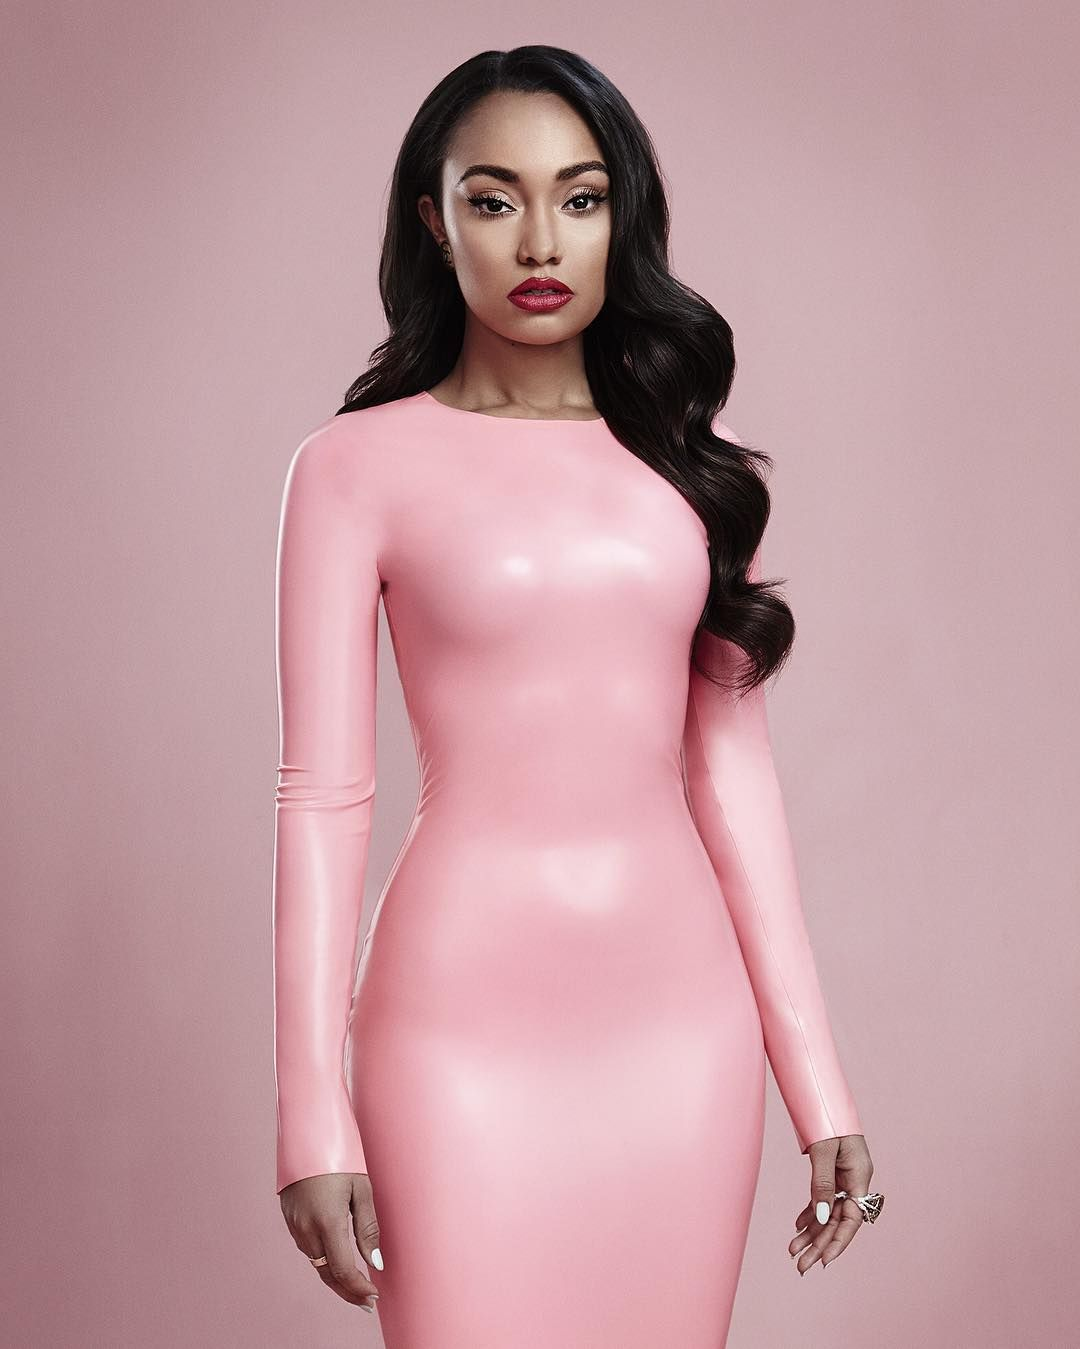 Images about celebrities in latex on pinterest